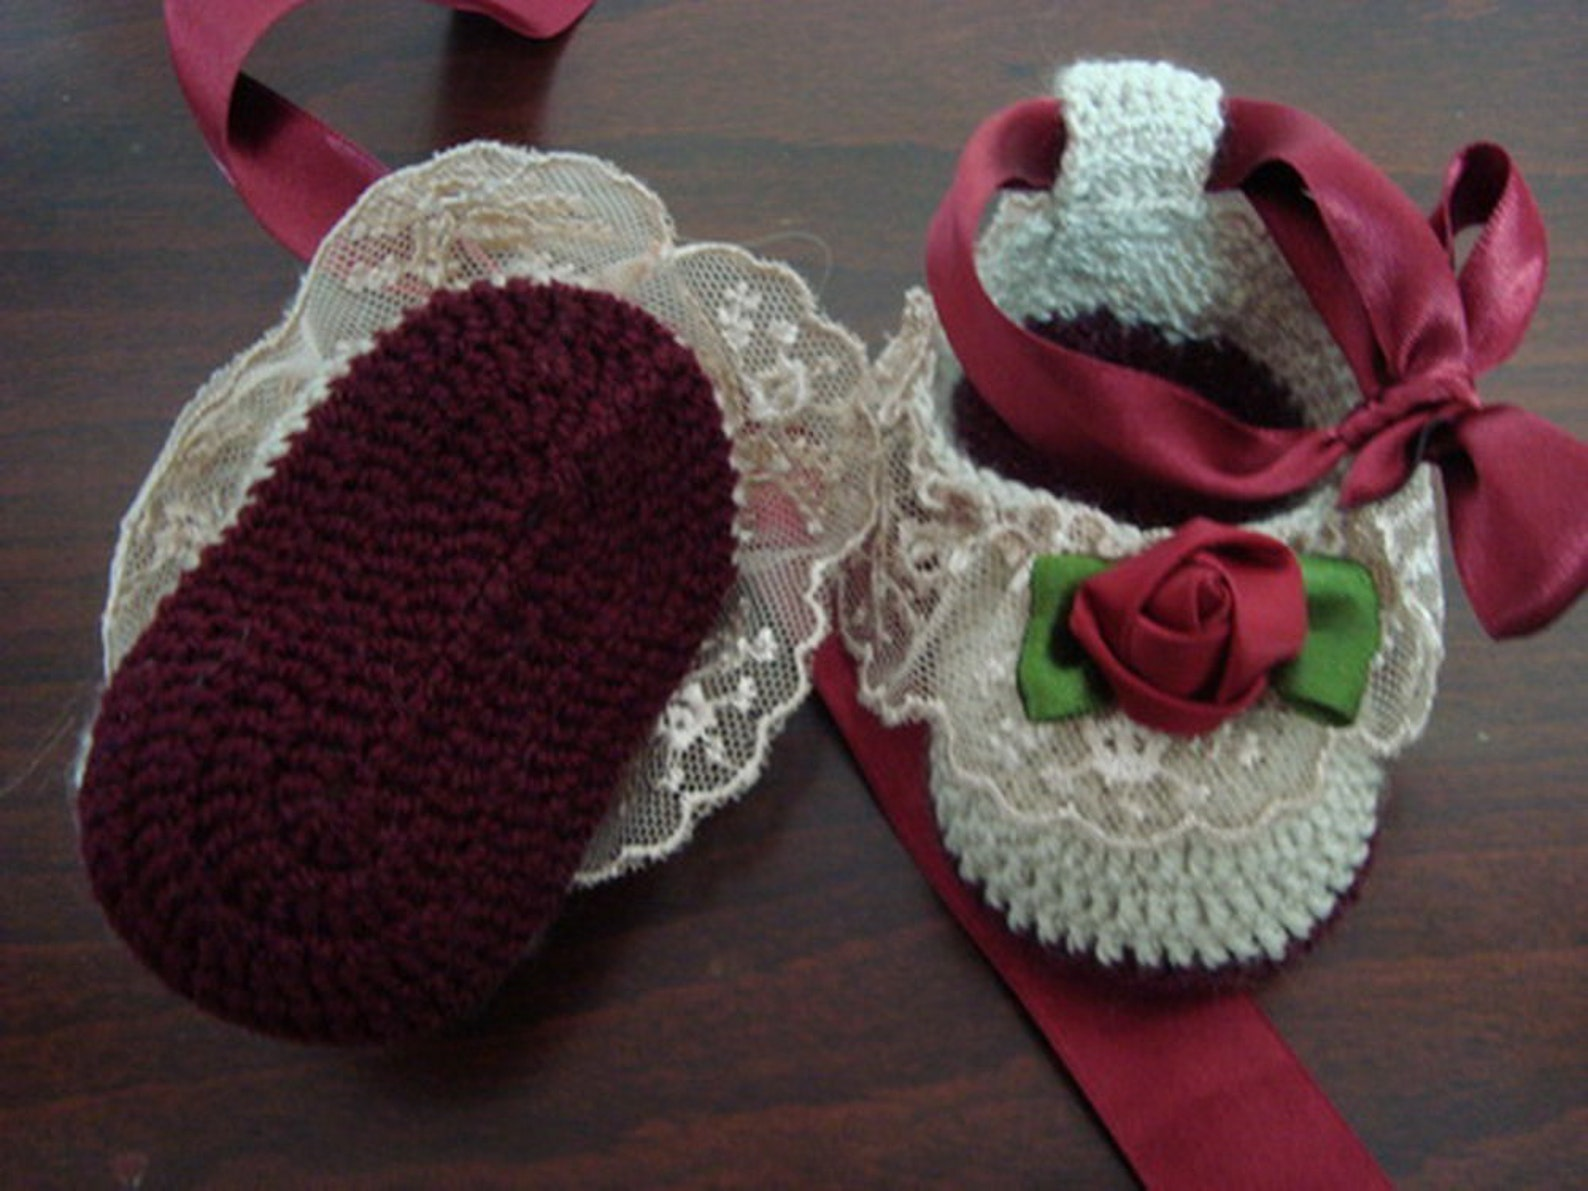 newborn baby girl handmade crochet beige - burgundy shoes, baby girl booties, girl slippers, ballet shoes, slippers with ribbons